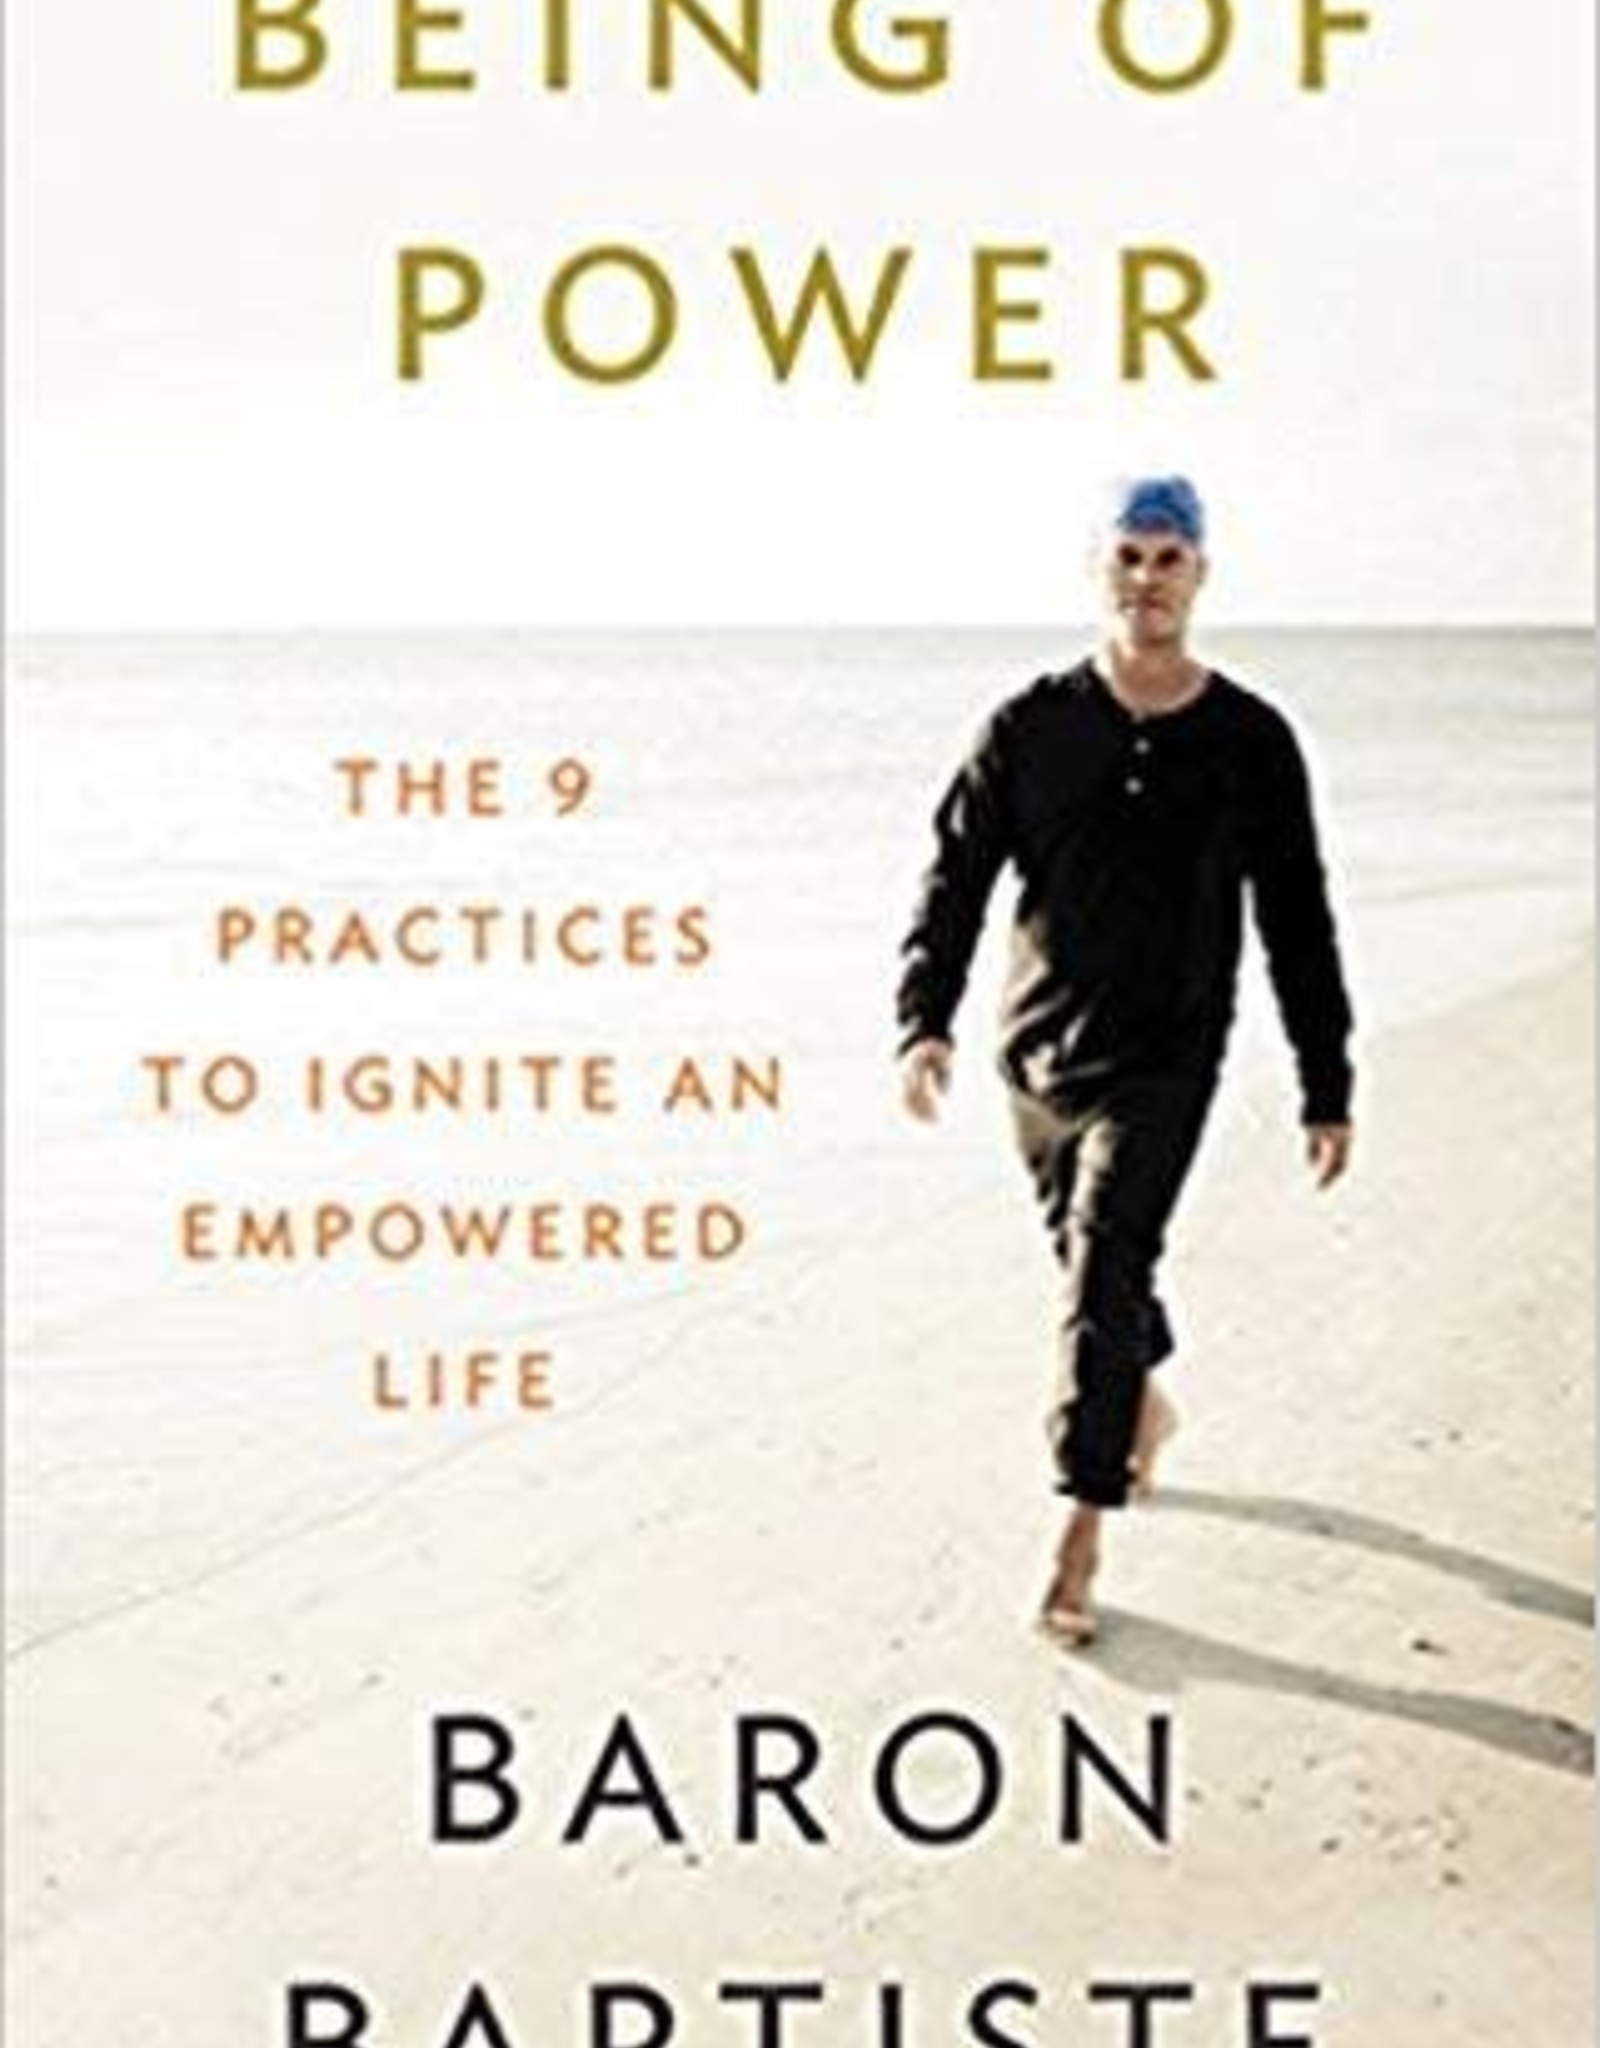 Integral Yoga Distribution Being of Power: The 9 Practices to Ignite an Empowered Life